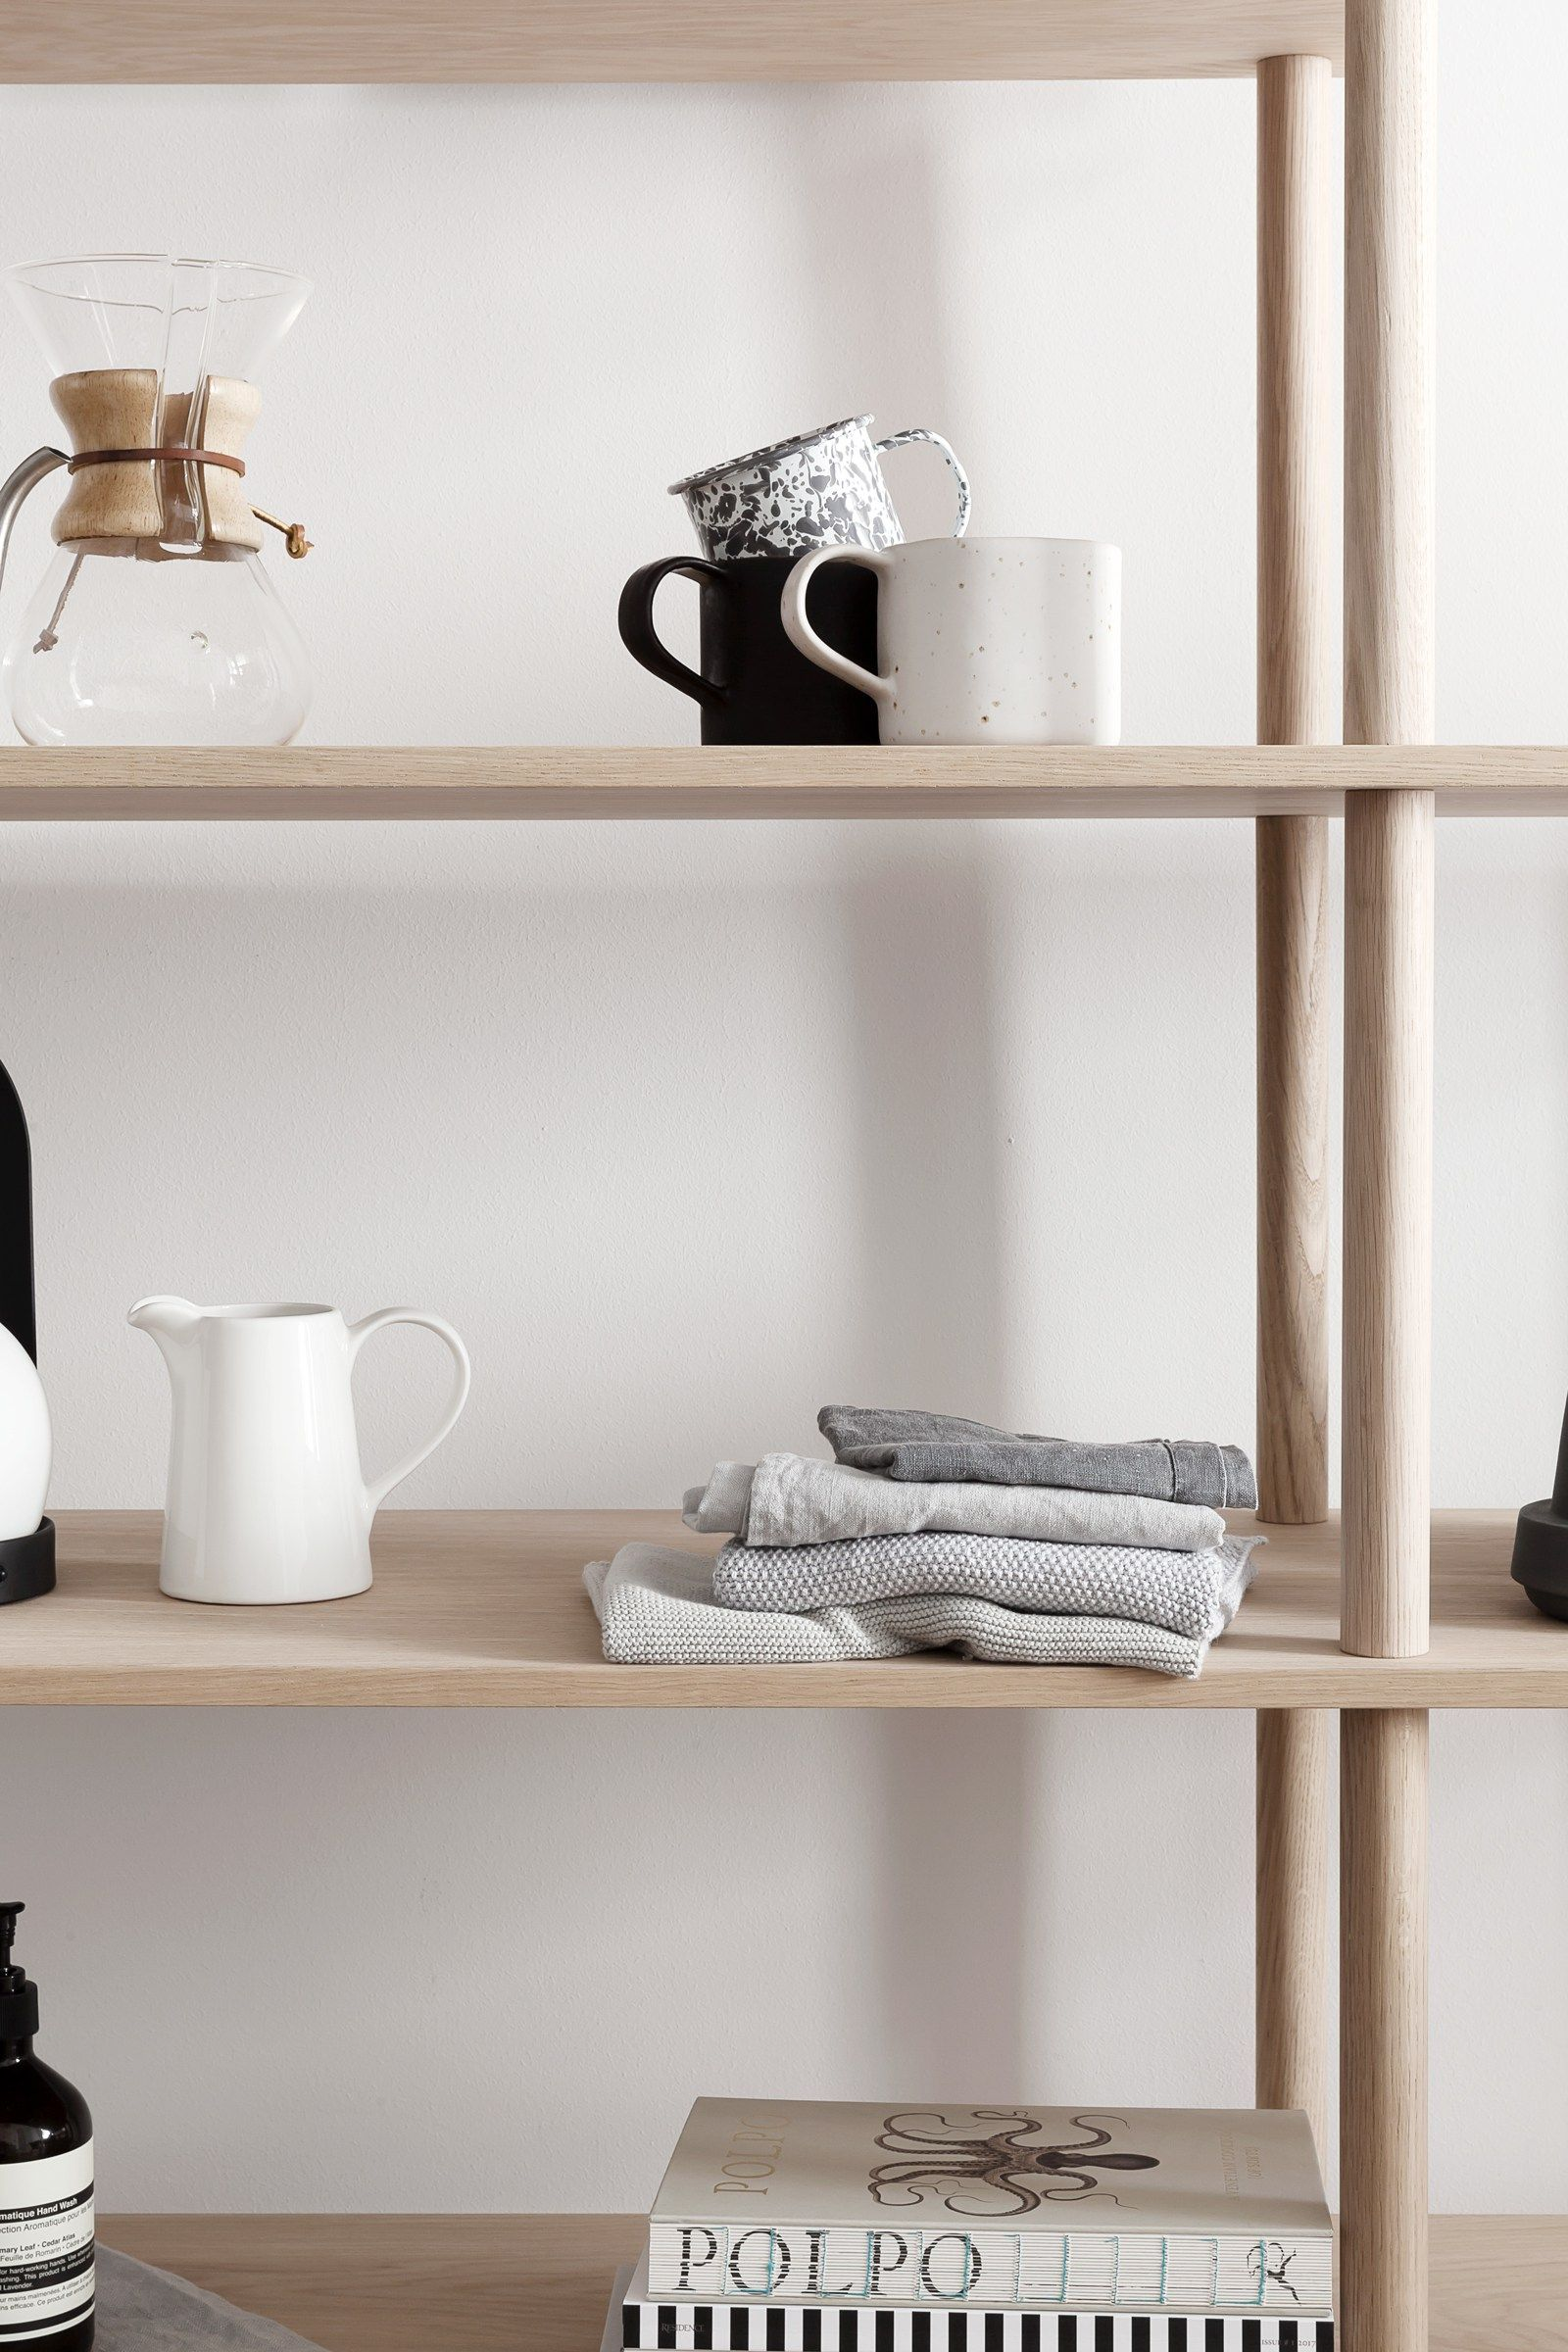 Woud Elevate Shelving In Our Kitchen  Coco Lapine Design